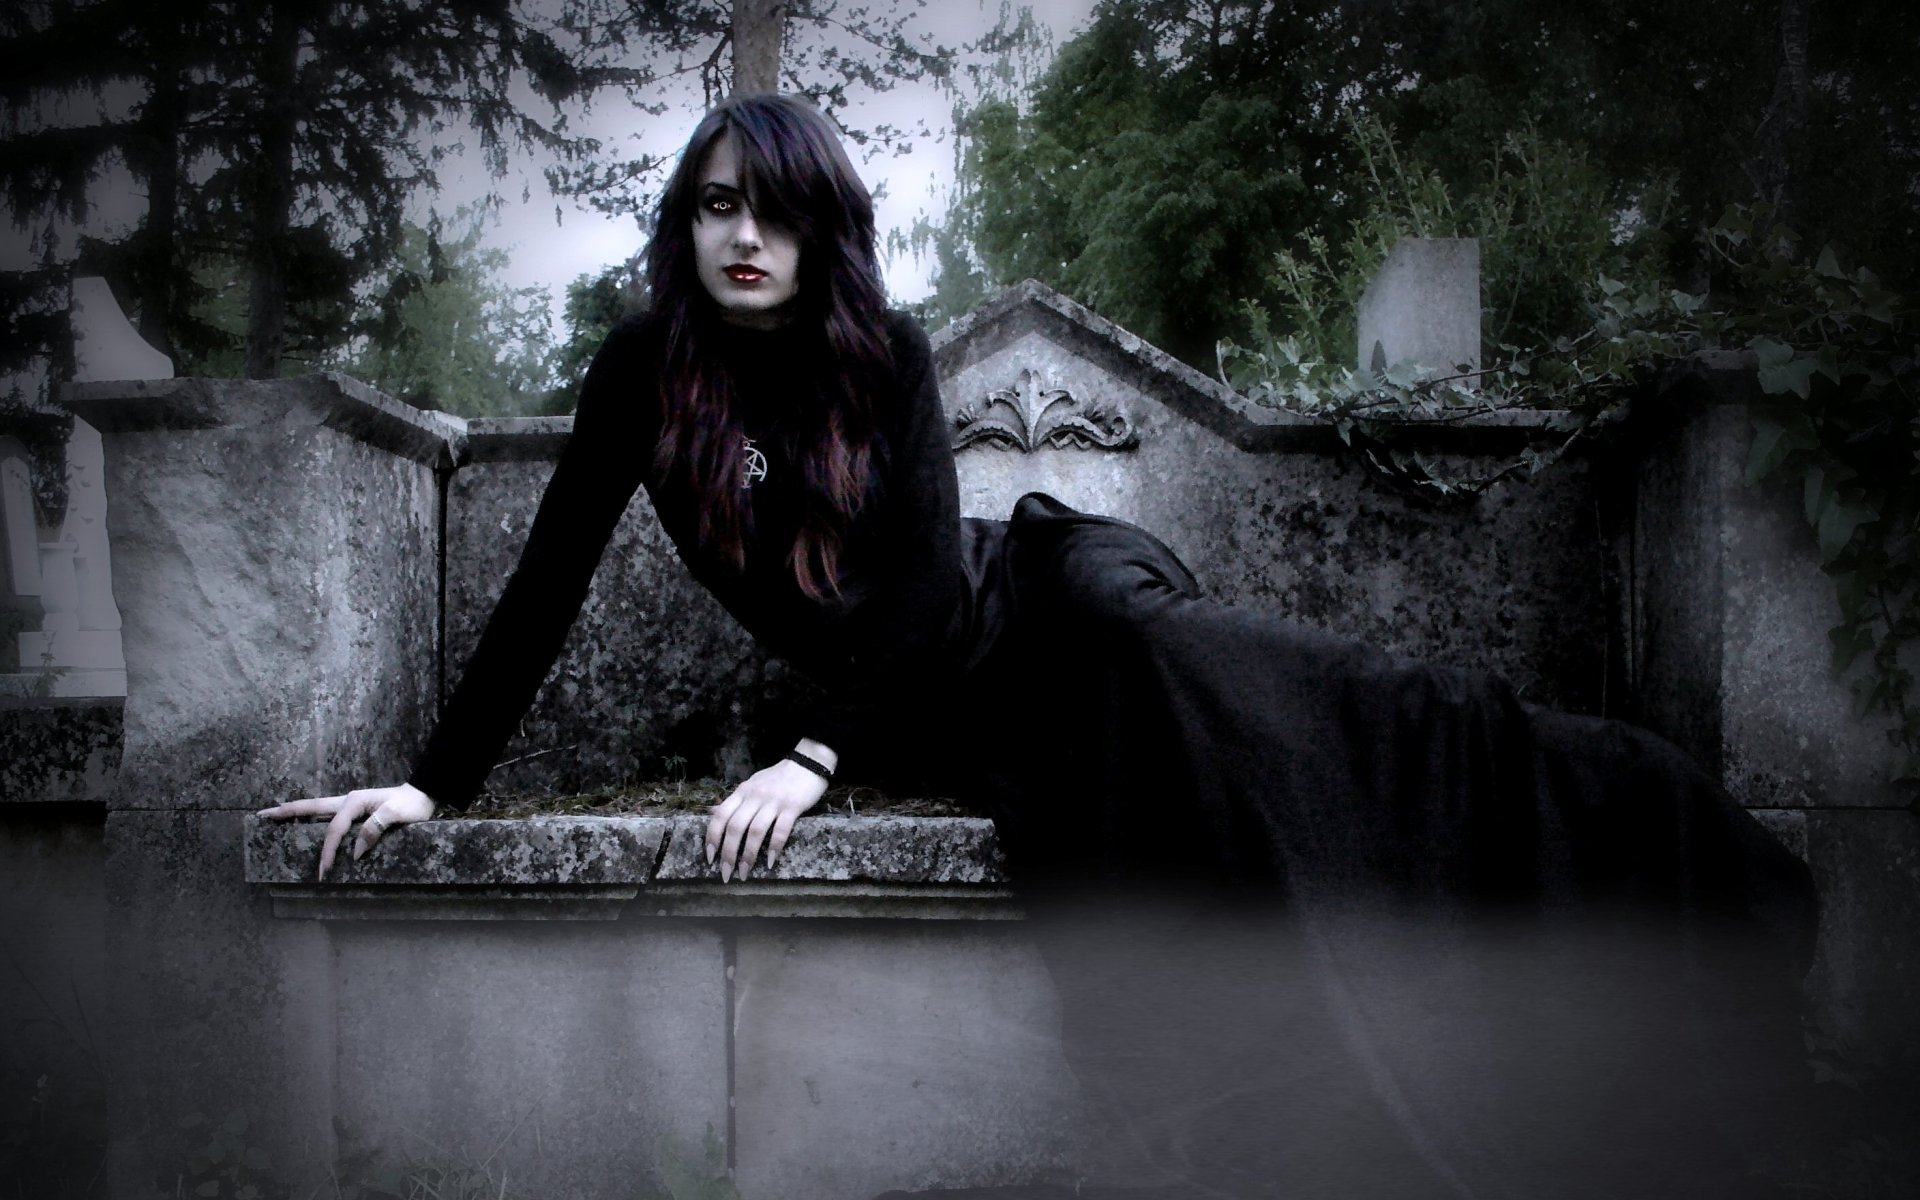 Fantasy dark gothic vampire horror evil wallpaper 1920x1200 28918 1920x1200